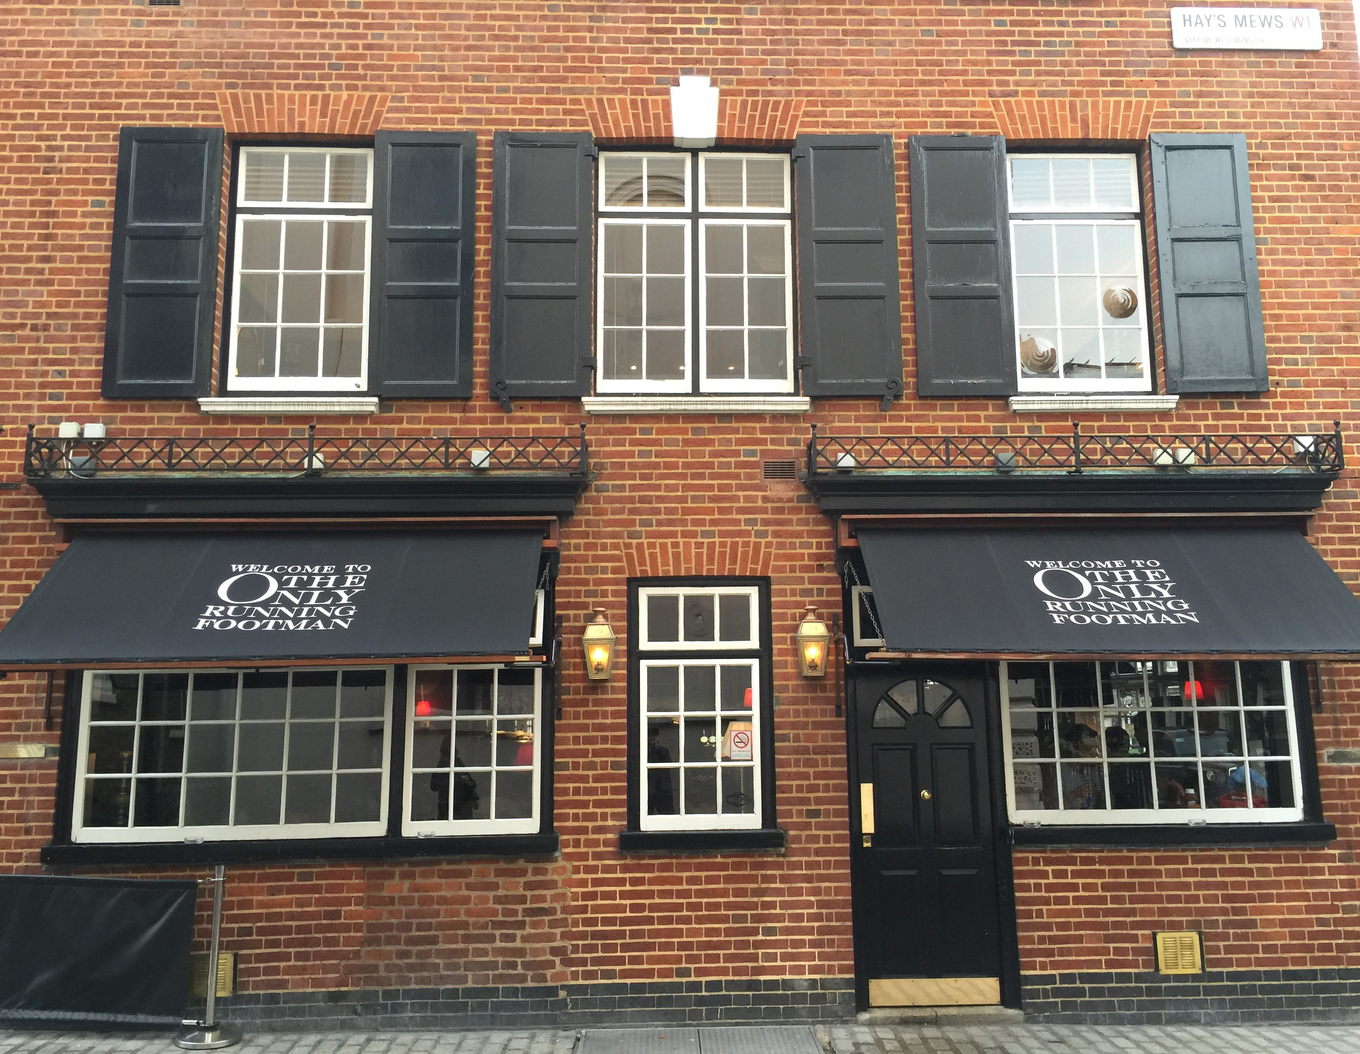 The Only Running Footman pub image 1